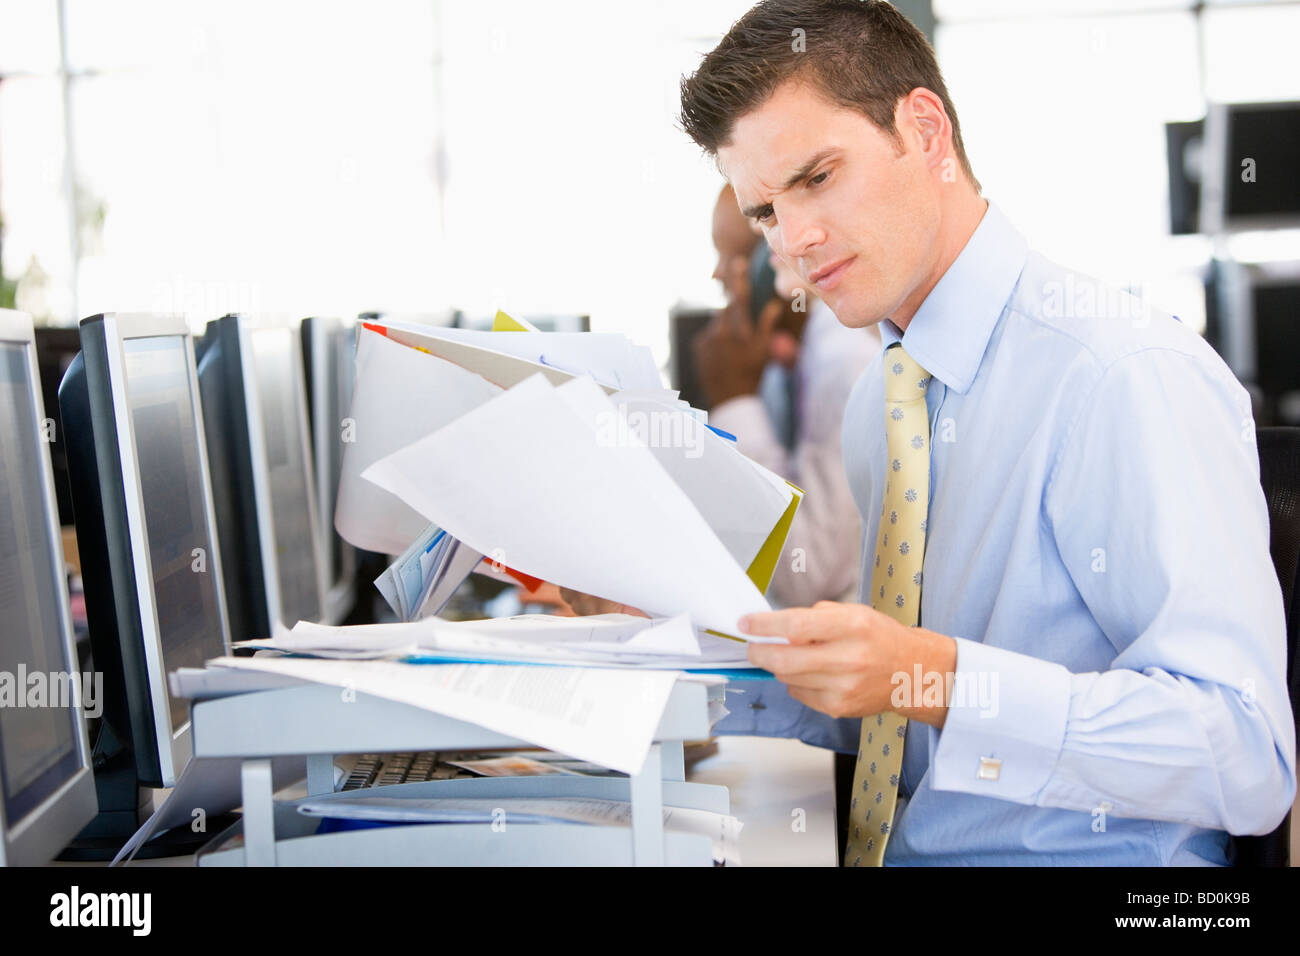 Stock Trader Looking Though Paperwork - Stock Image